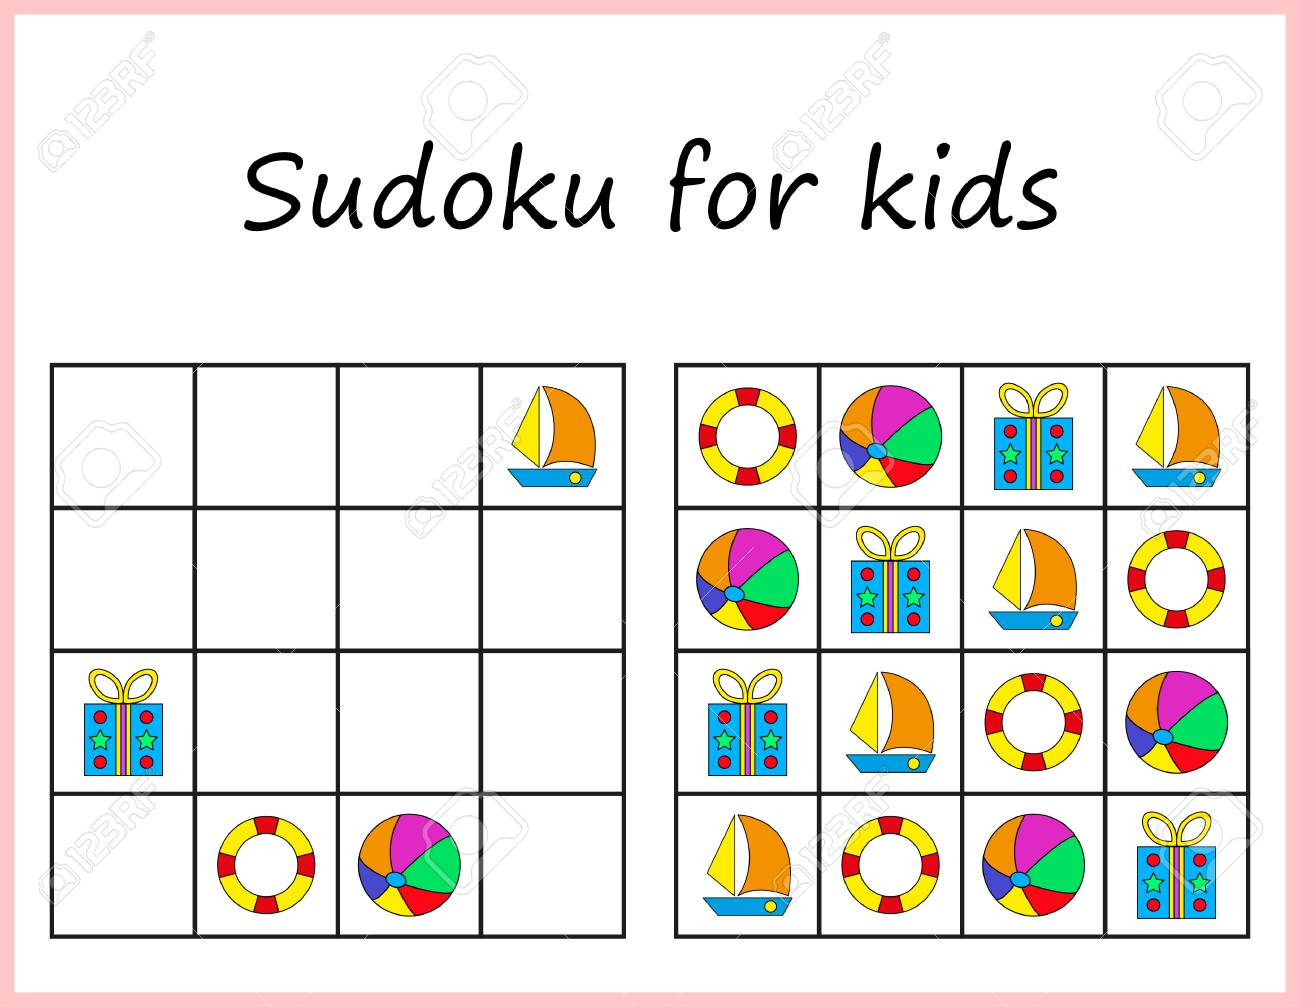 graphic regarding Sudoku Printable for Kids titled Sudoku for youngsters. Recreation for preschool small children, working out logic. Worksheet..